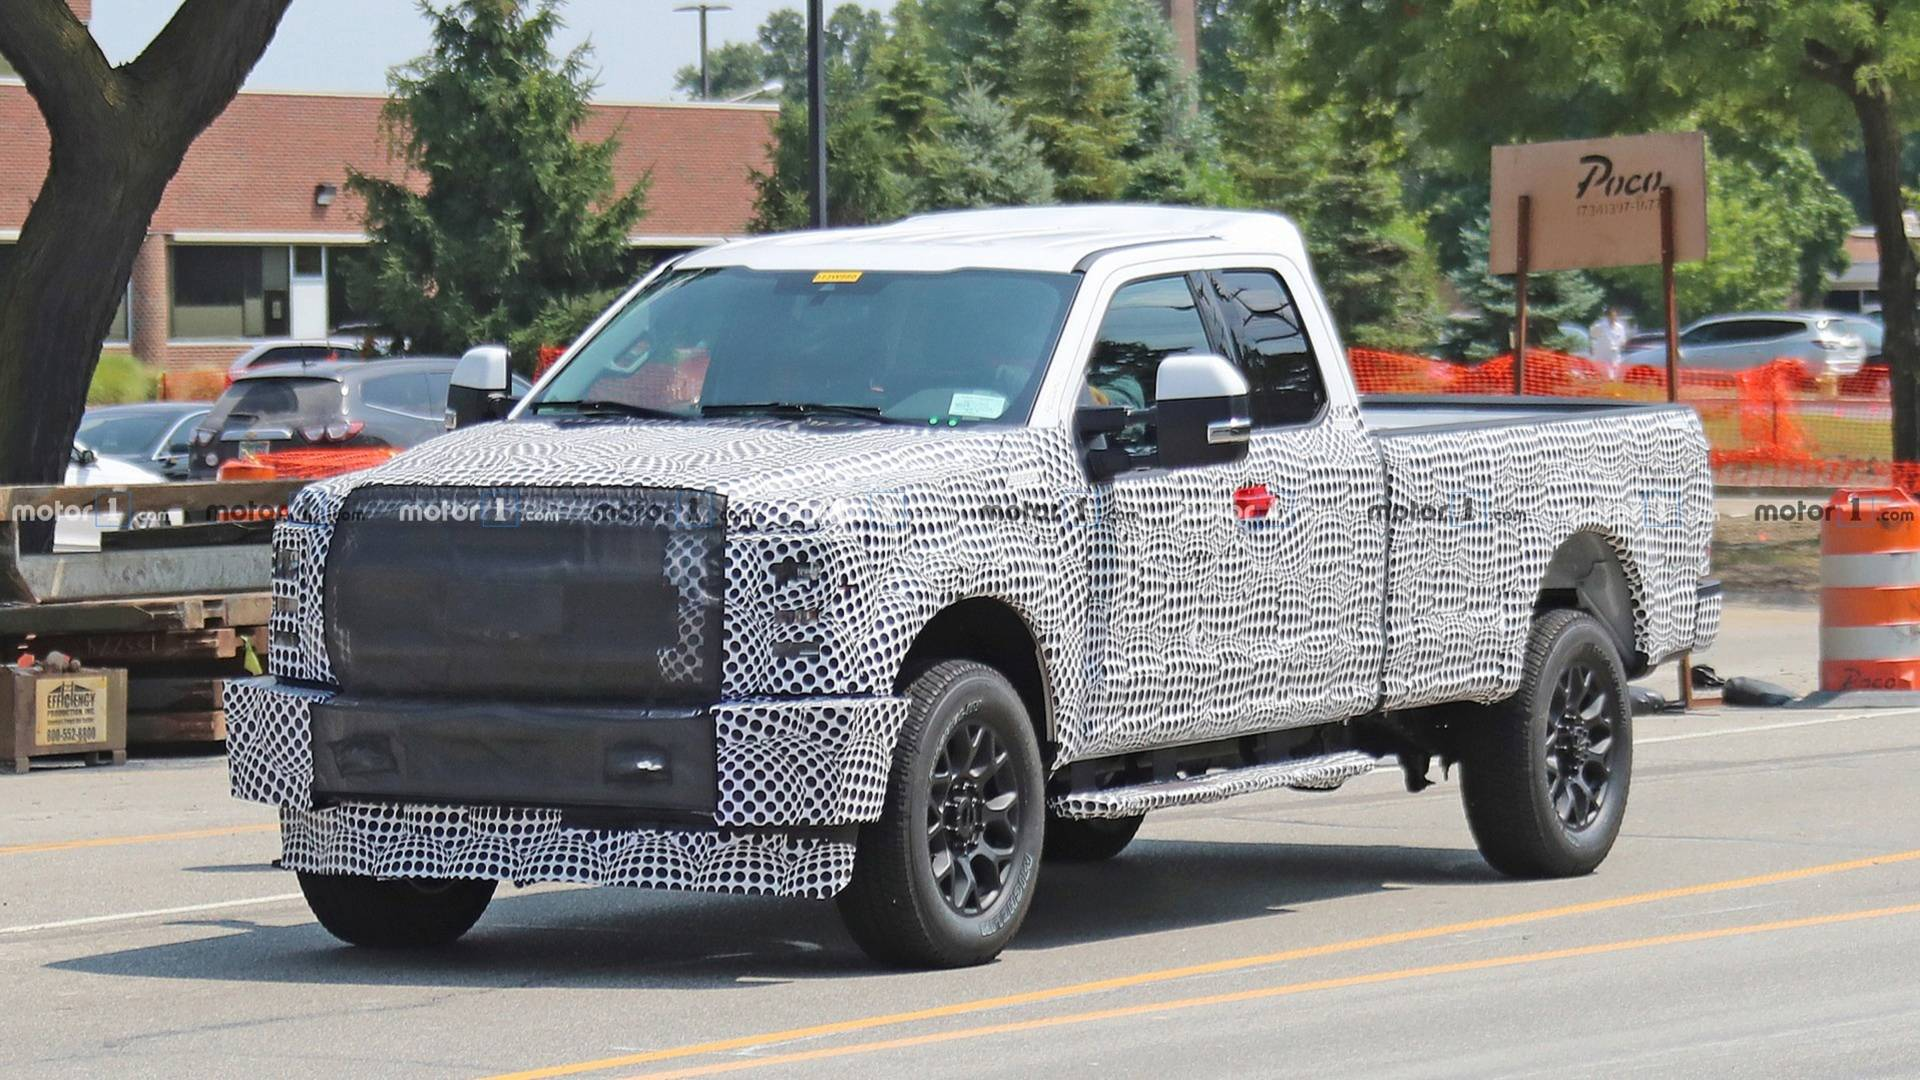 66 All New 2020 Spy Shots Ford F350 Diesel New Review